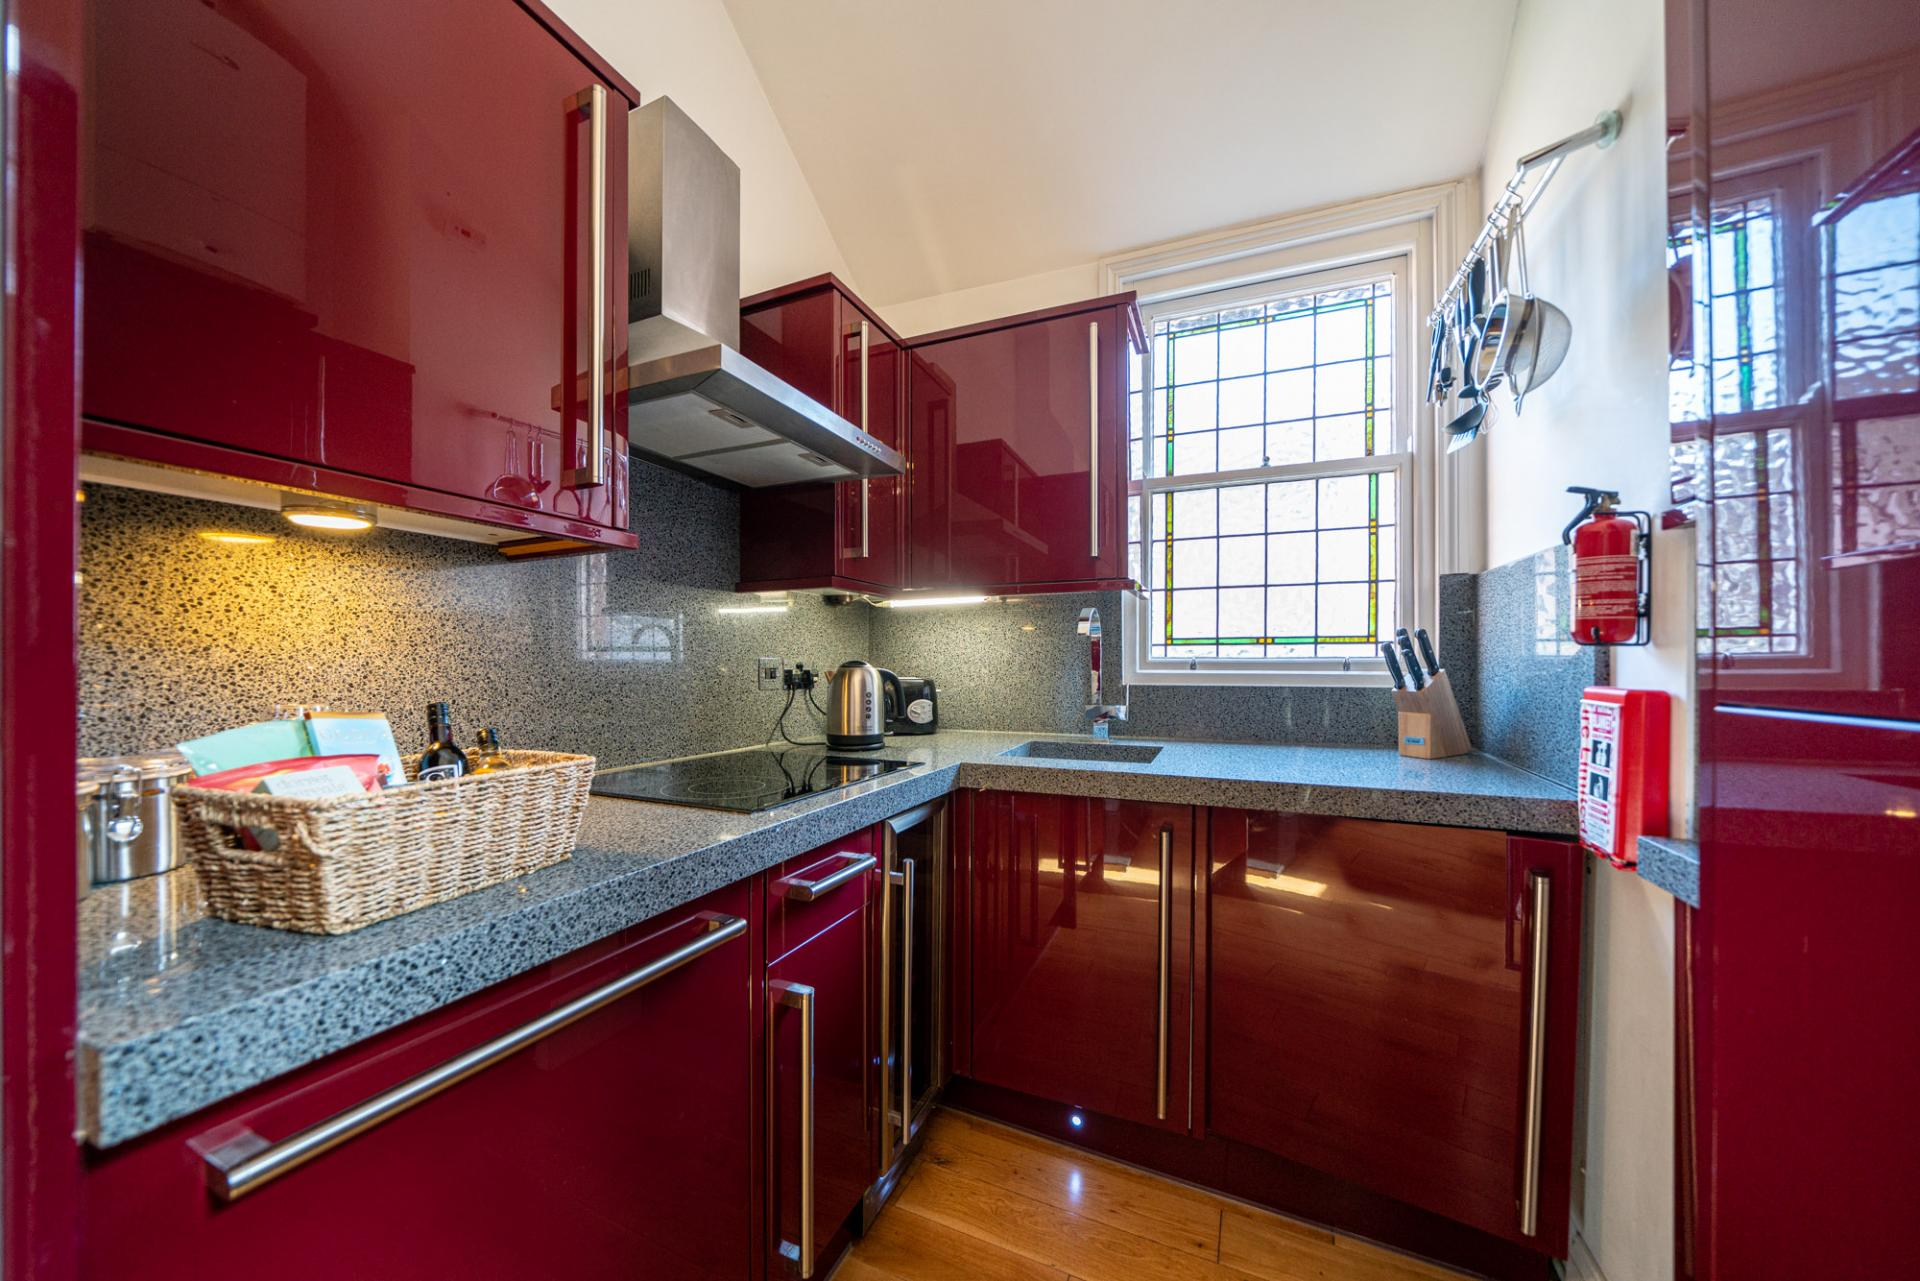 Kitchen at Romeland Apartments, The Cathedral Quarter, St Albans